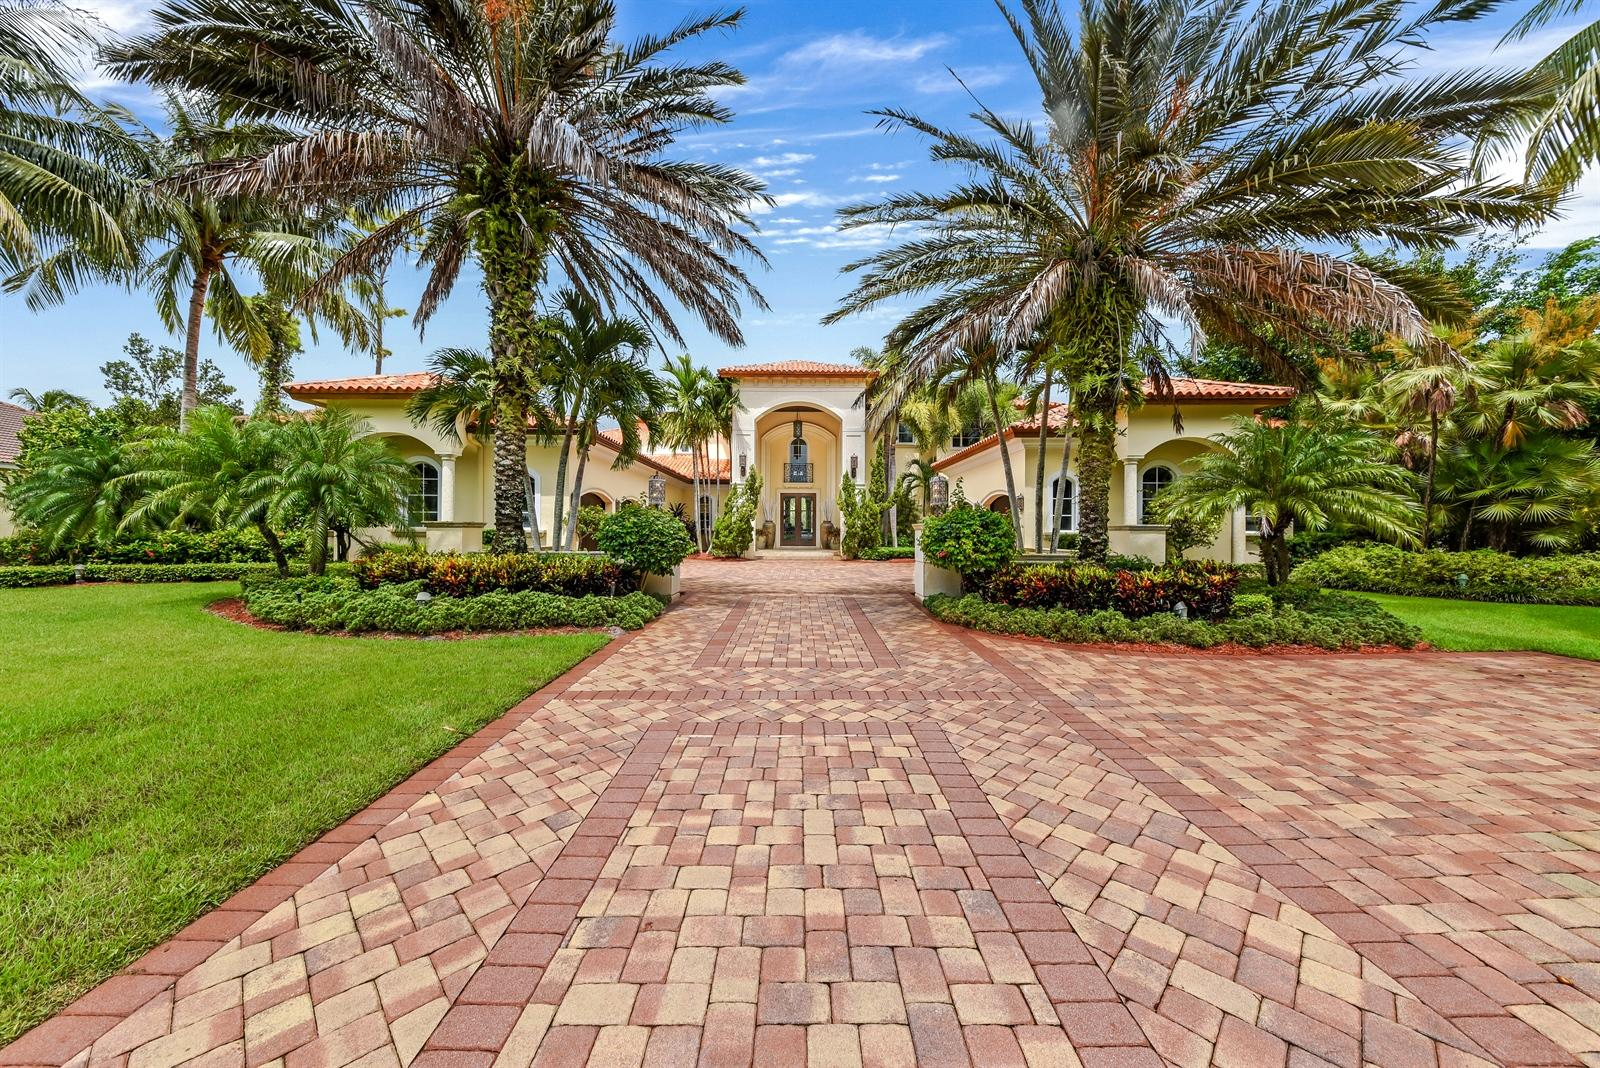 STEEPLECHASE PALM BEACH GARDENS